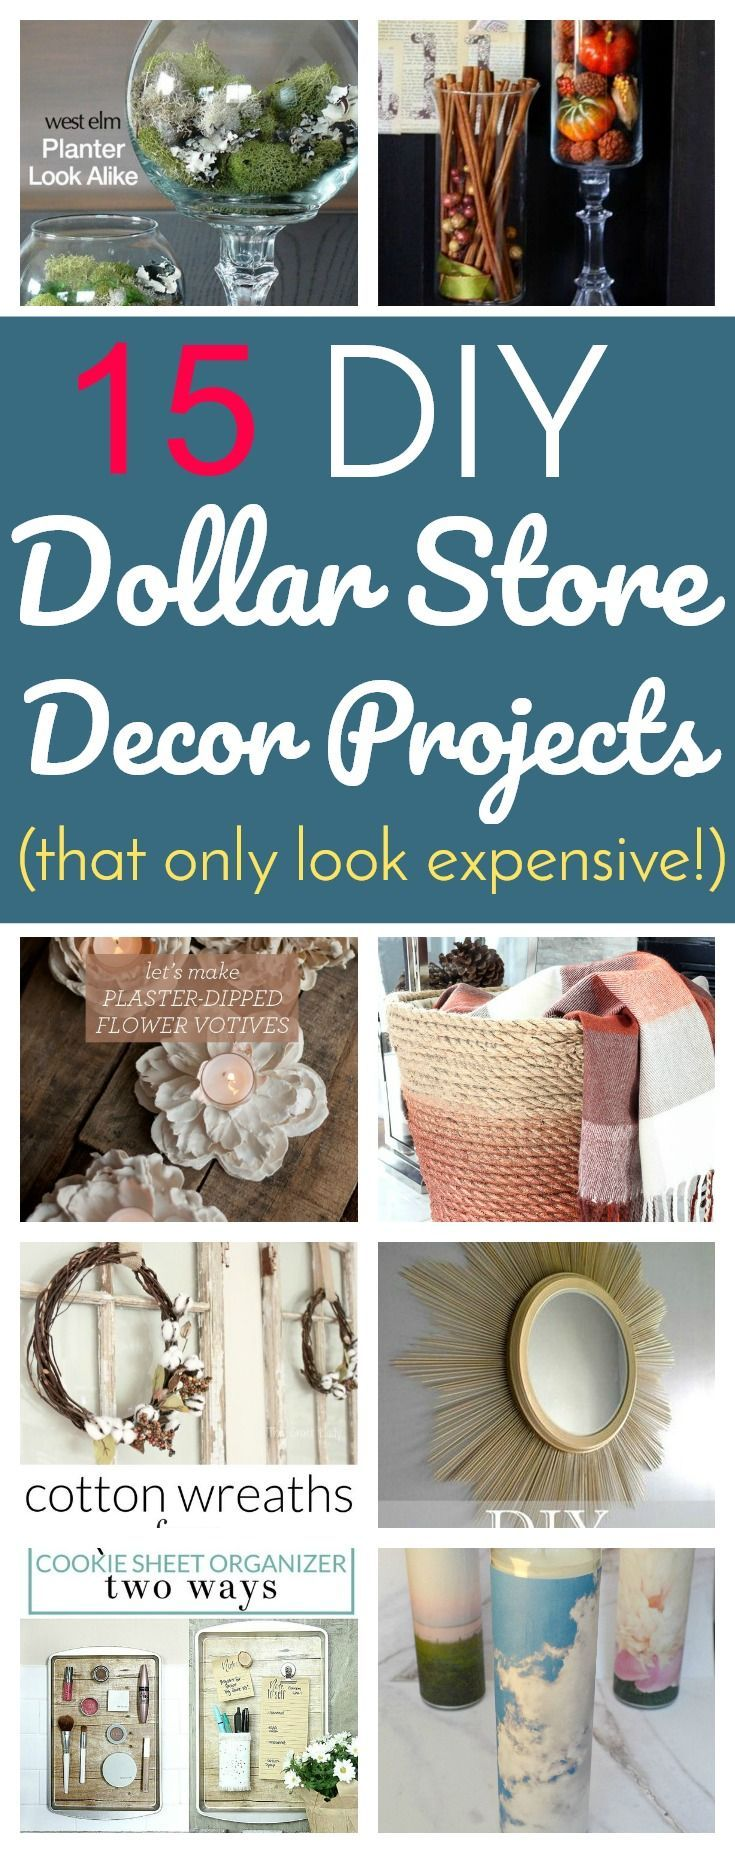 15 DIY Dollar Store Decor Projects That Only Look Expensive...! (via Lifestyle For Real Life) #style #shopping #styles #outfit #pretty #girl #girls #beauty #beautiful #me #cute #stylish #photooftheday #swag #dress #shoes #diy #design #fashion #homedecor